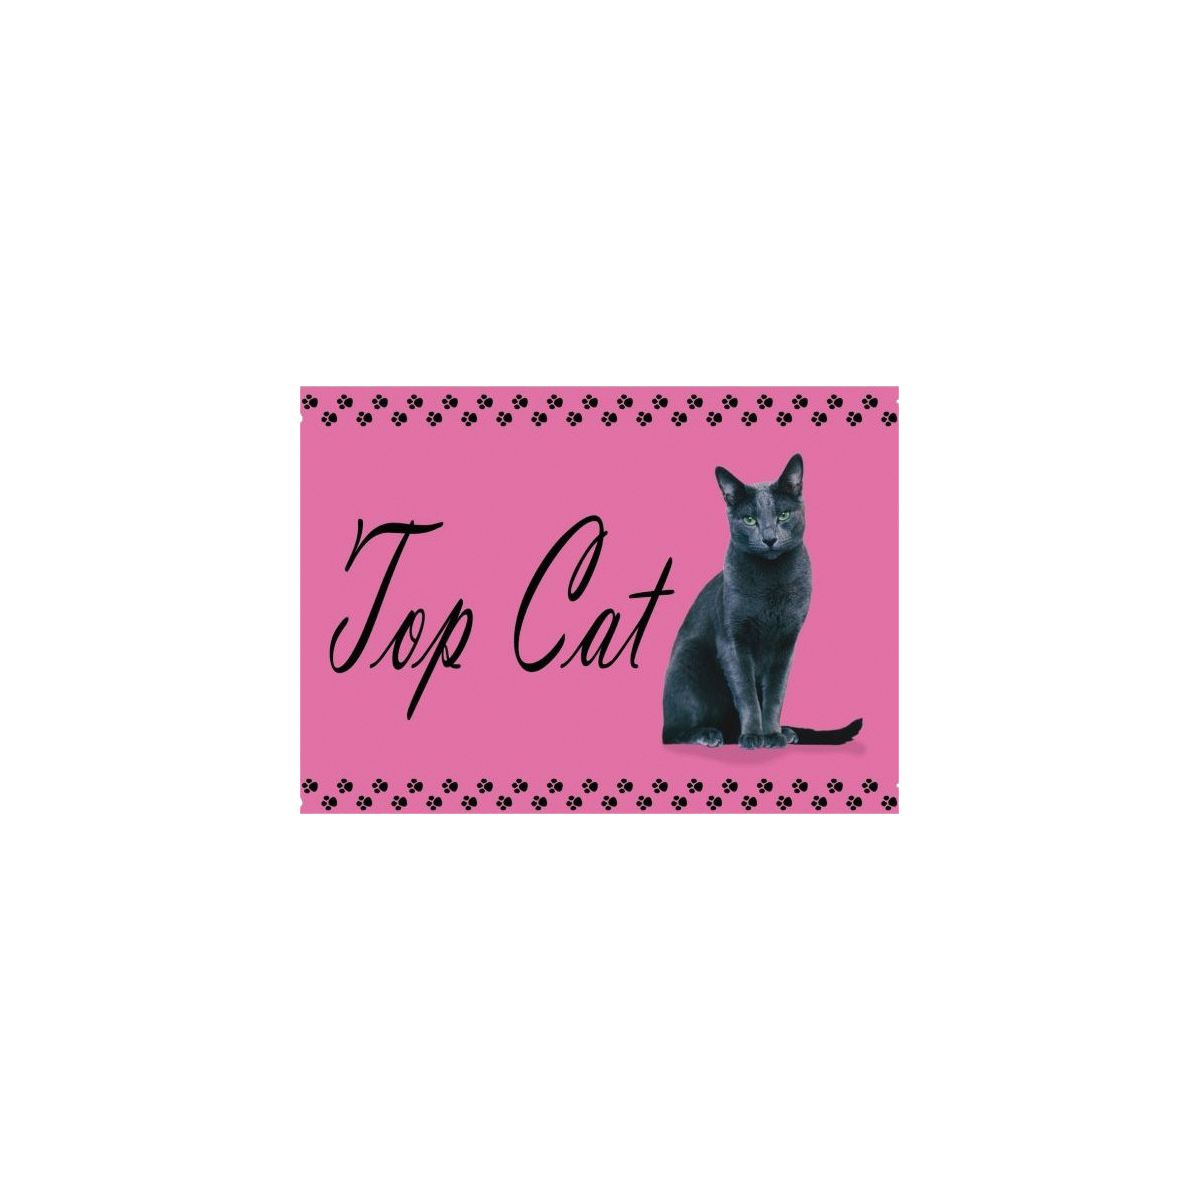 Studio pets - placemat top cat meerkleurig